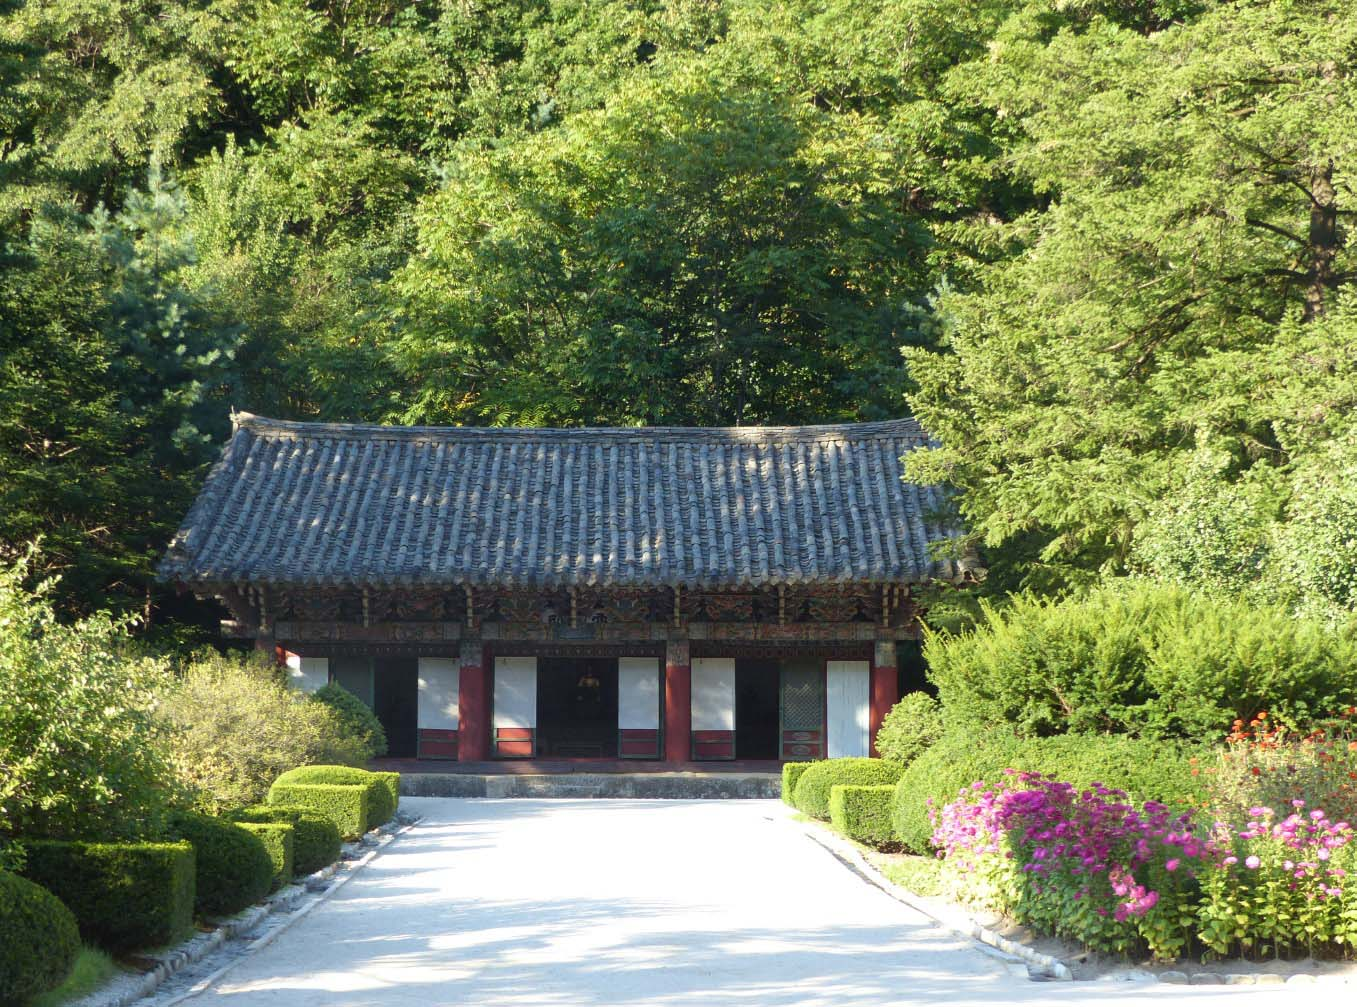 Oriental temple surrounded by trees